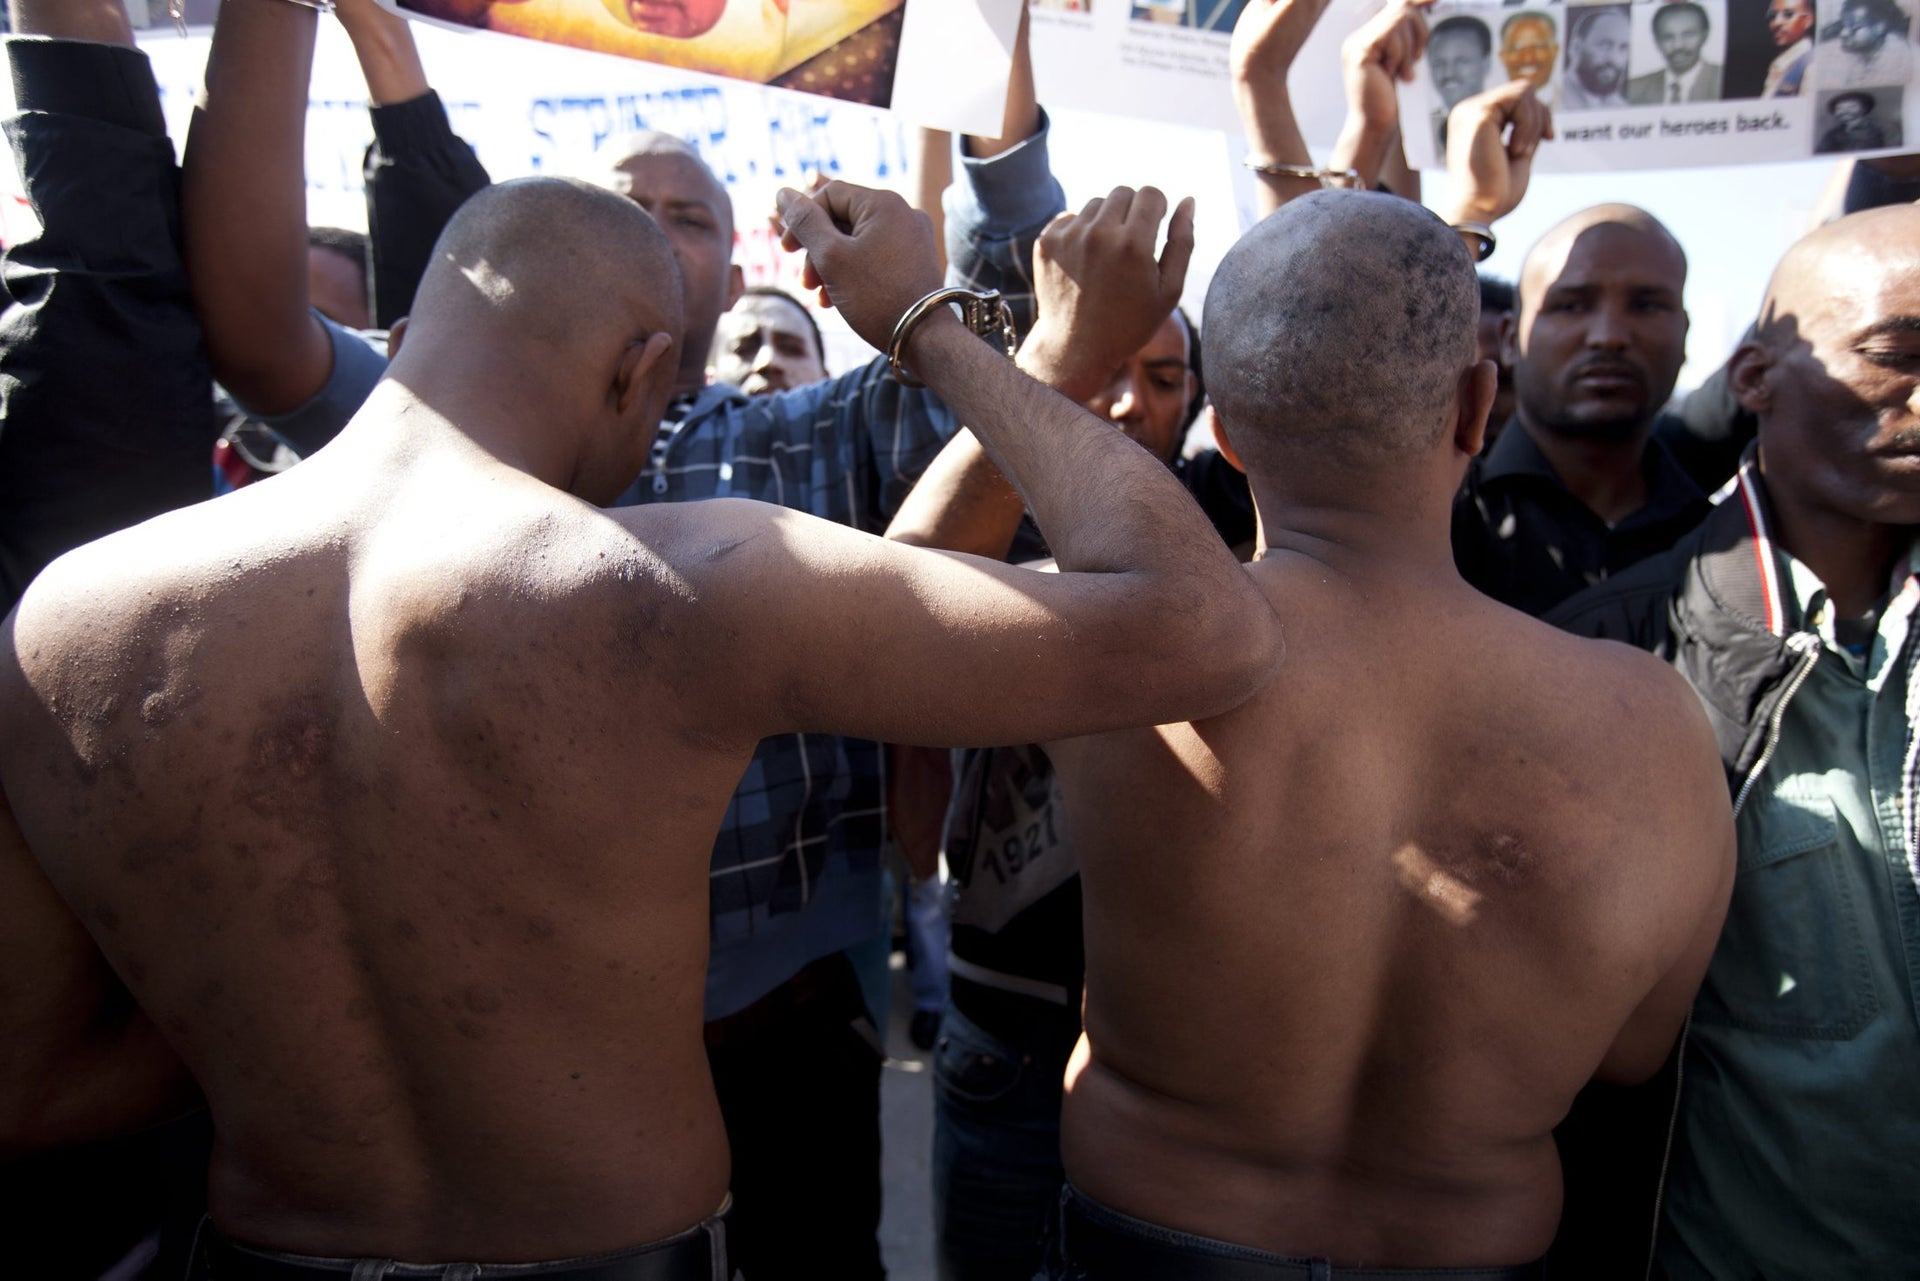 Eritrean asylum seekers showing scars of torture inflicted by Egyptian smugglers in the Sinai, at a protest at the Interior Ministry.